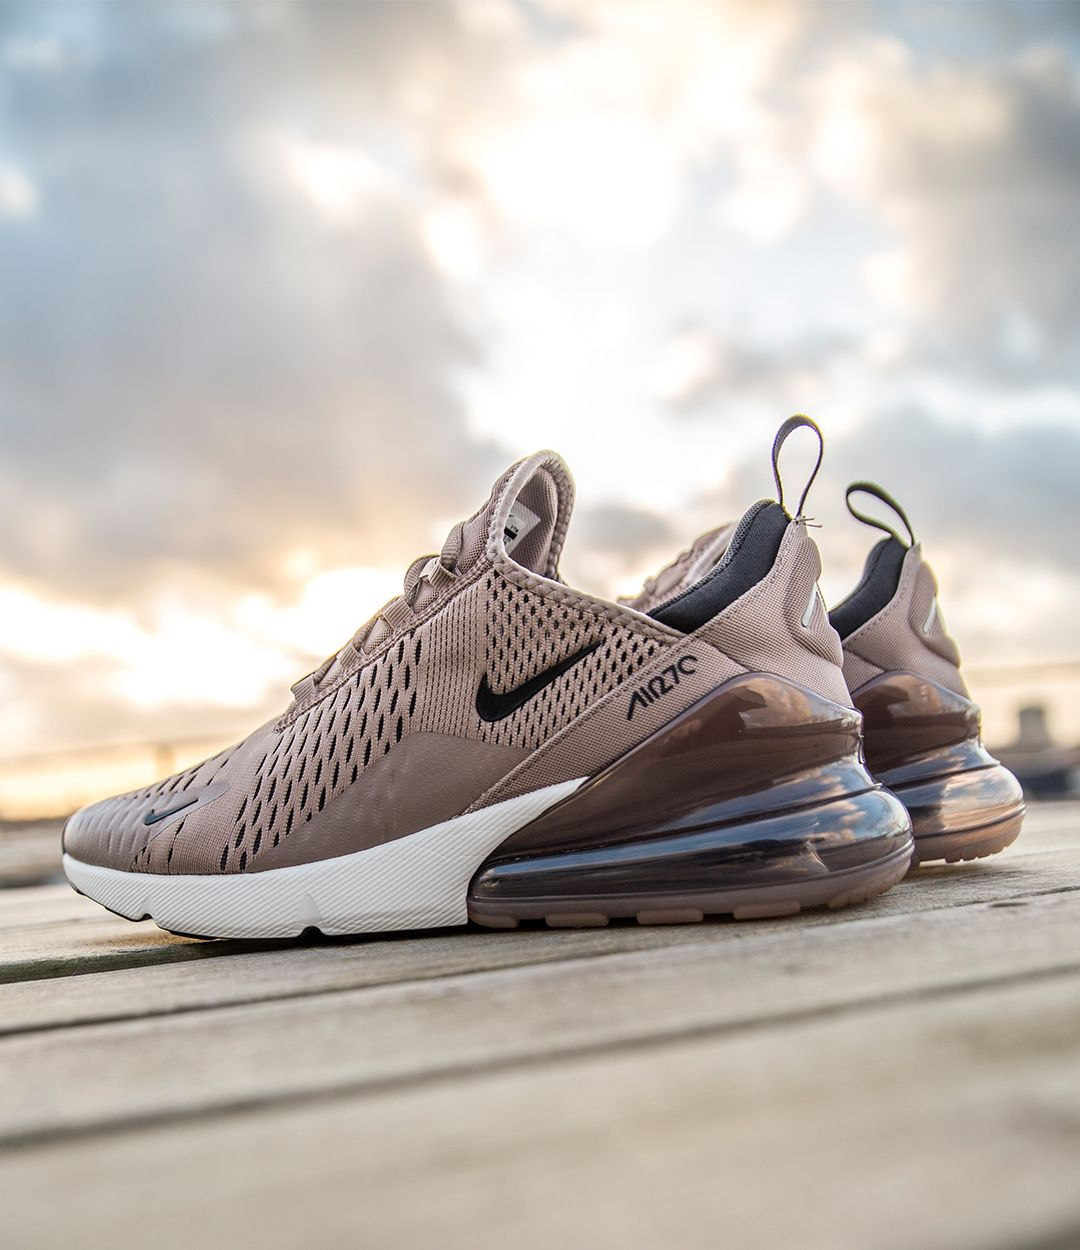 Nike Air Max 270 Hype Shoes Sneakers Fashion Shoe Boots